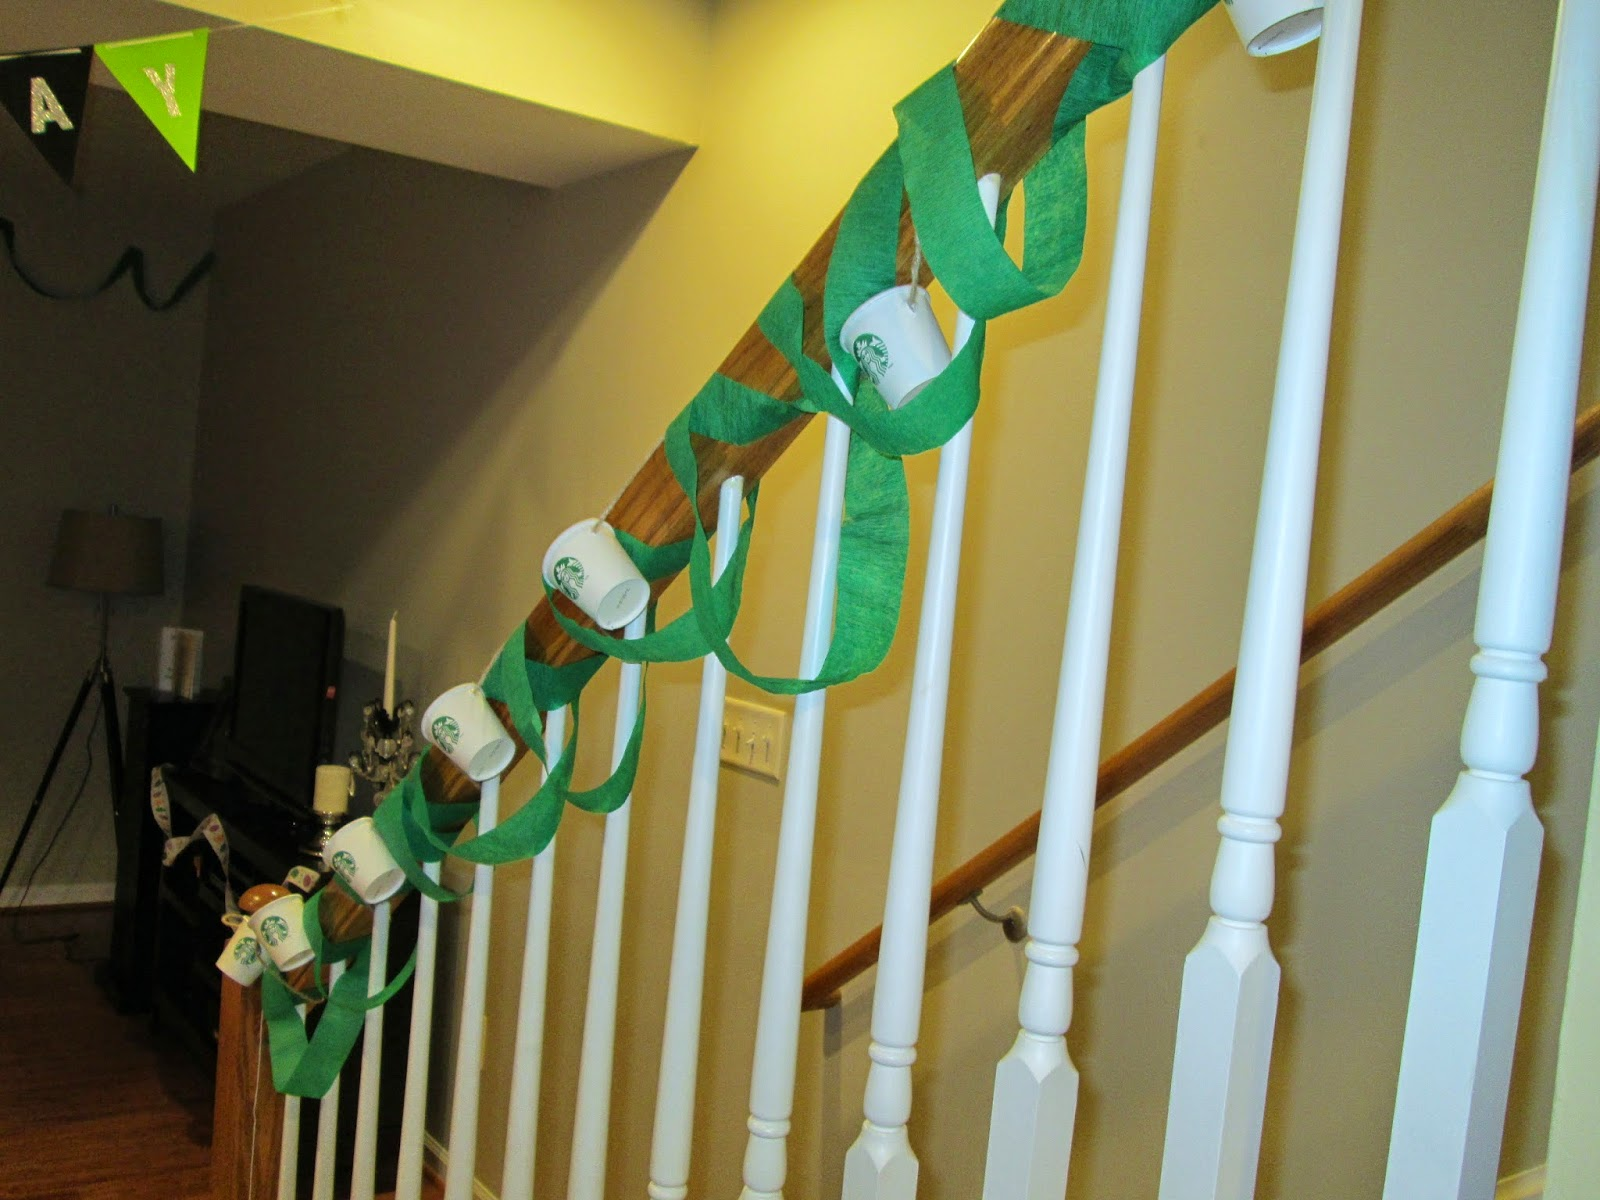 Lifestyle post on DIY decor for a starbucks birthday party